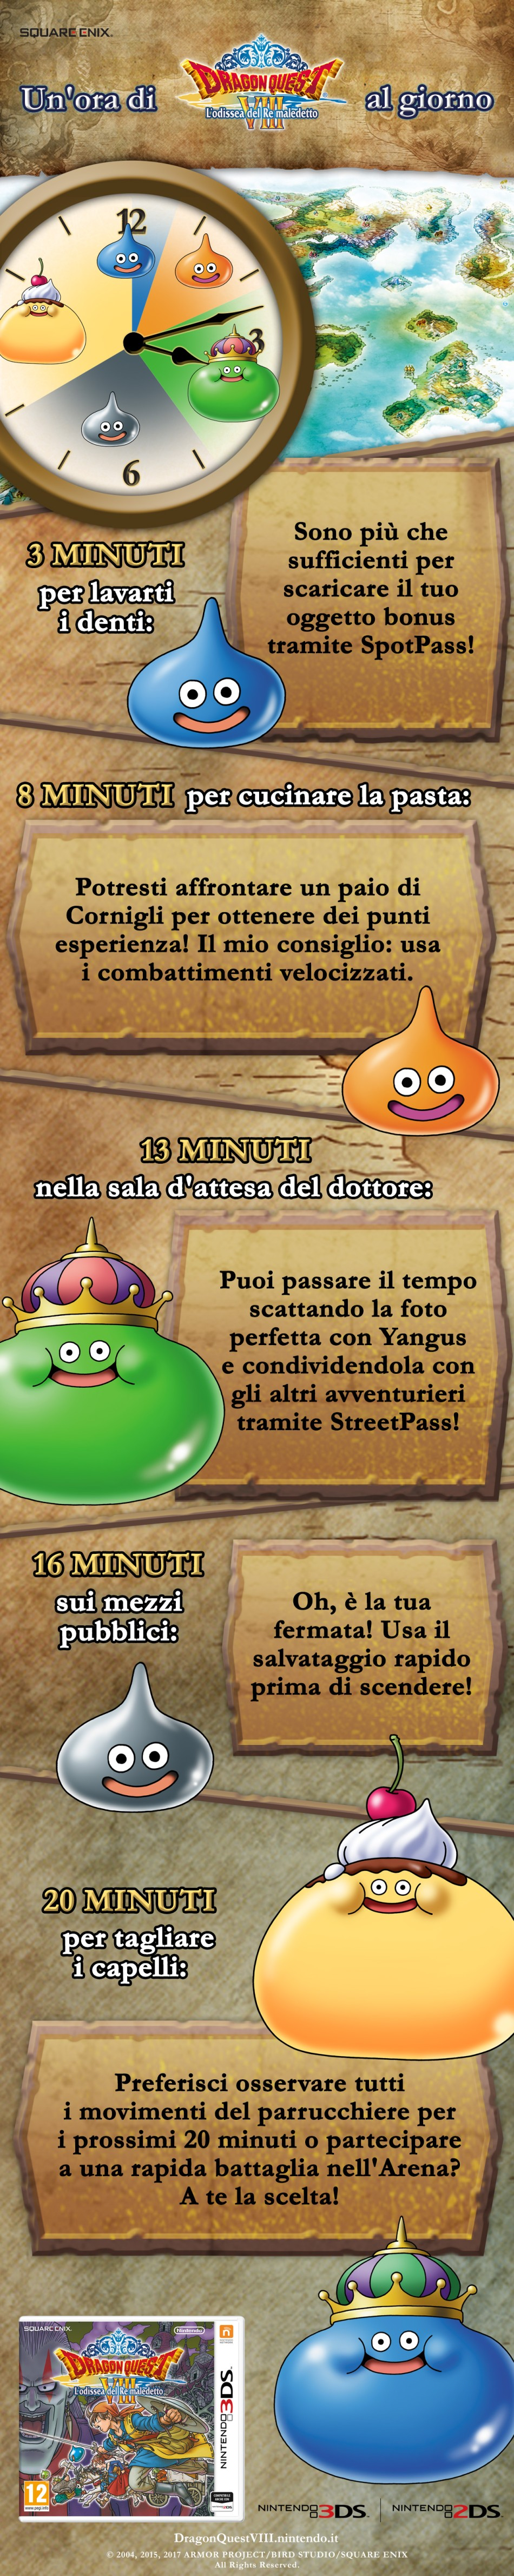 CI_DragonQuest_Infographic_AnHourADay_itIT.jpg